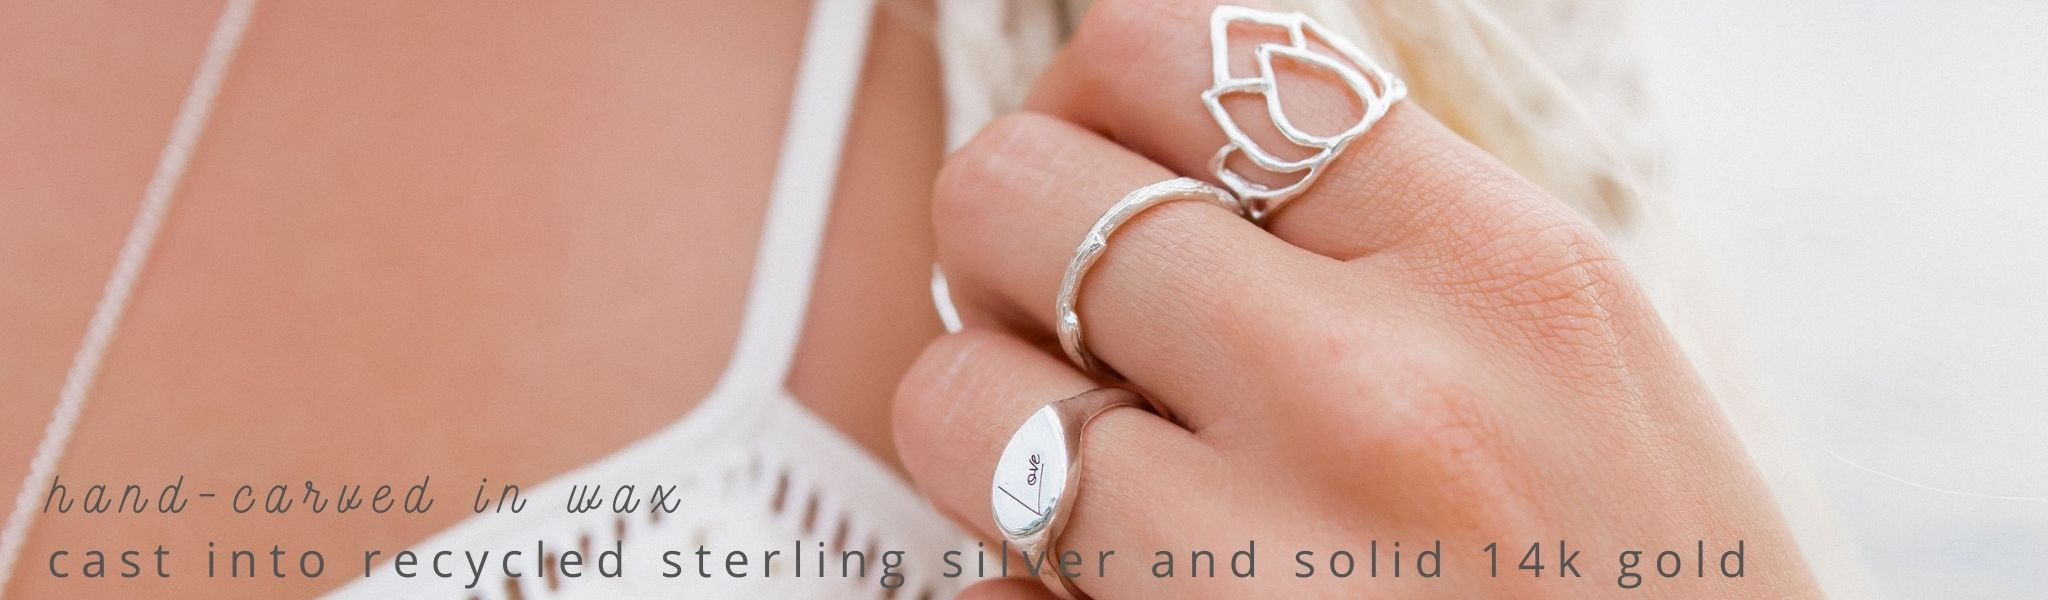 Blooming Lotus Jewelry Rings - Meaningful Jewelry